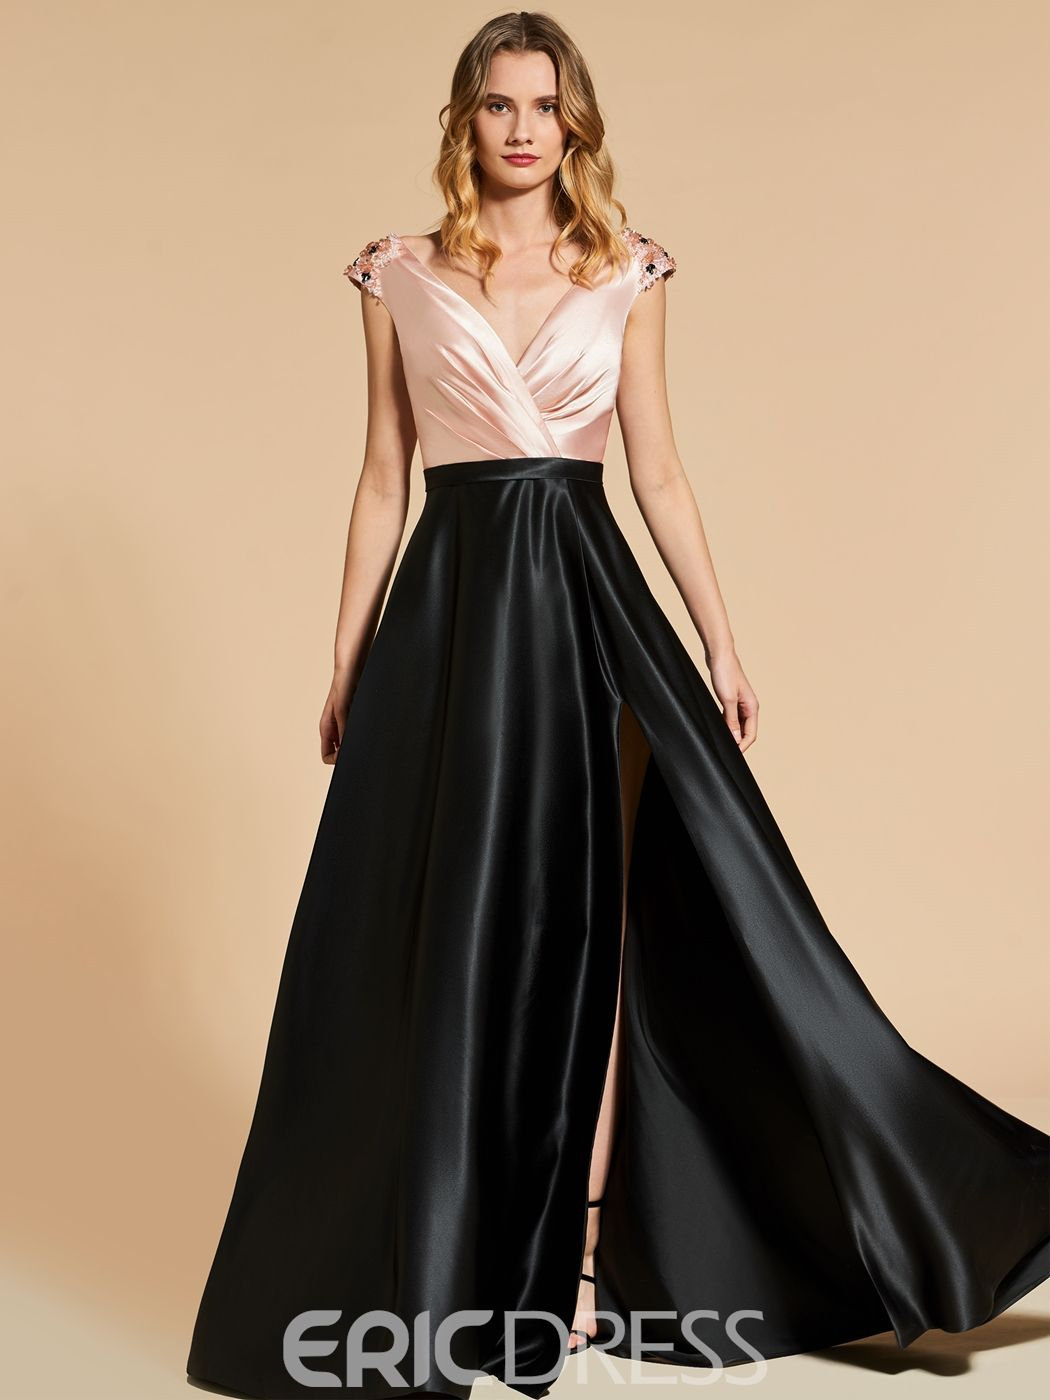 2f71b92f0478cb Ericdress A Line Beaded Cap Sleeve V Neck Evening Dress With Side Slit  13097779 - Ericdress.com